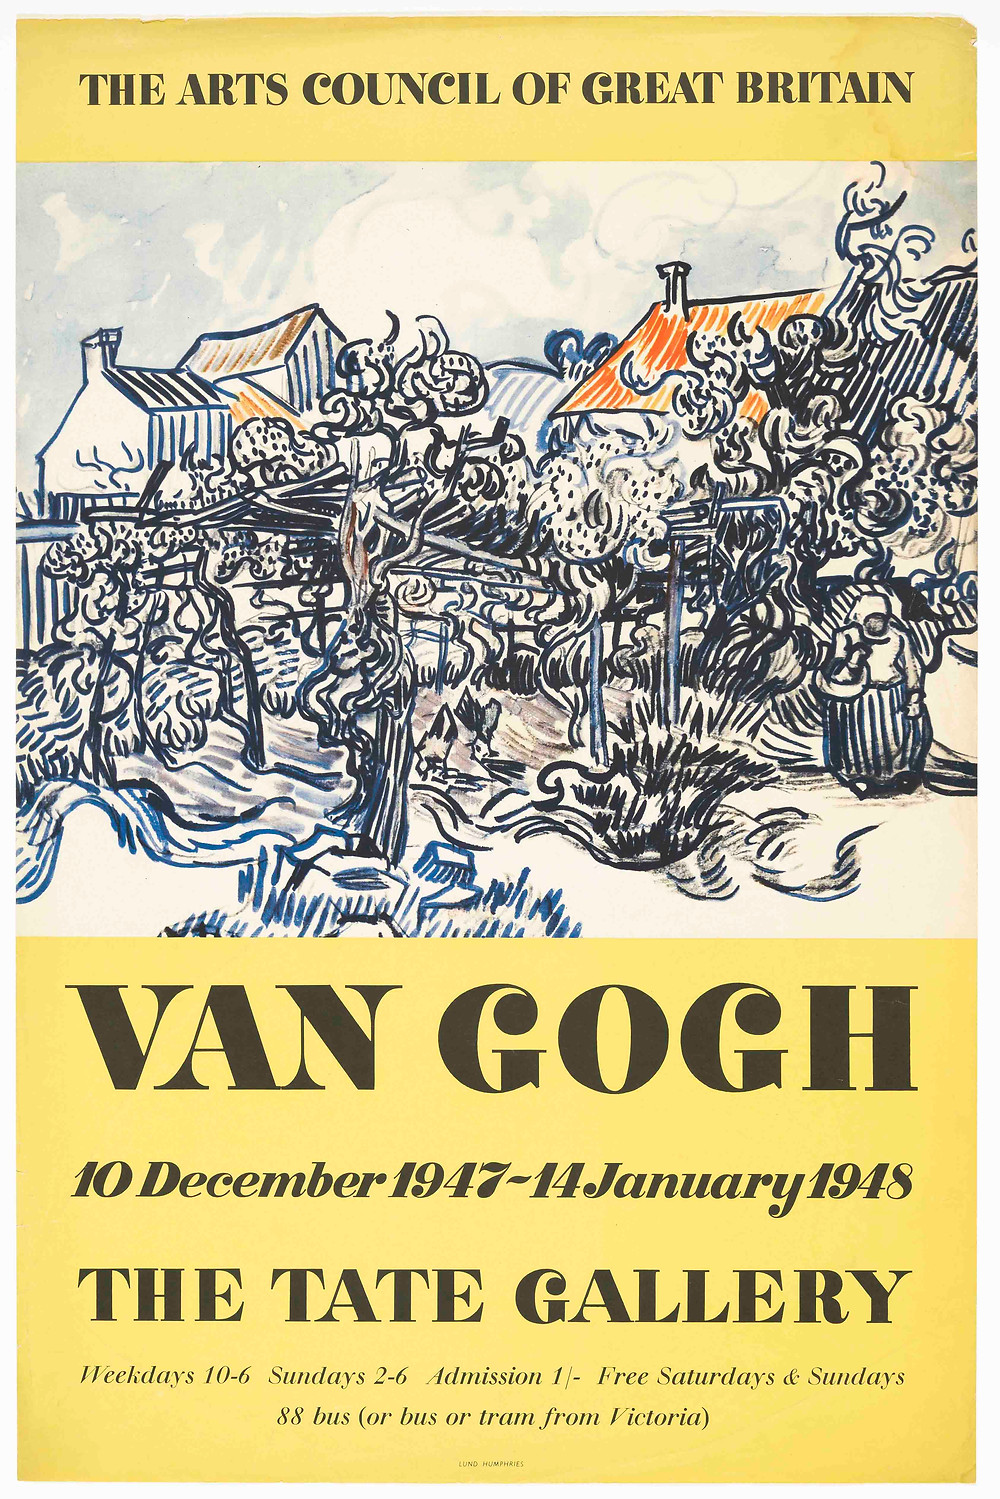 Poster from 1948 about exhibition of Van Gogh Paintings at the Tate Gallery